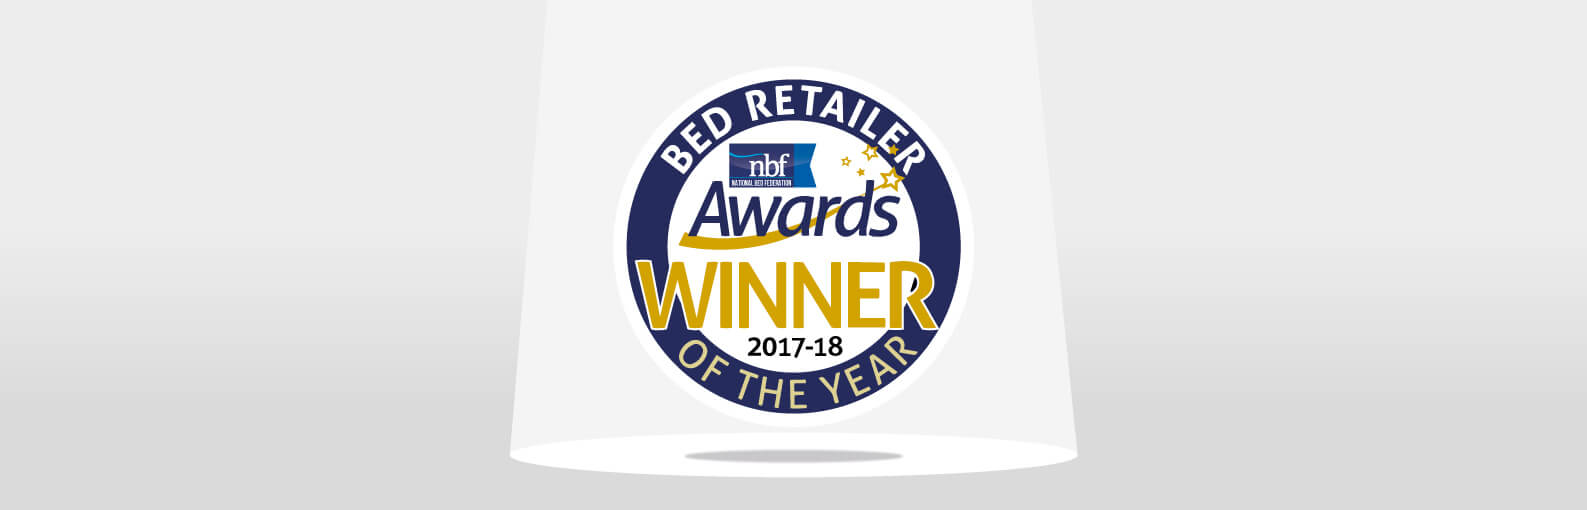 UK Bed Retailer of The Year